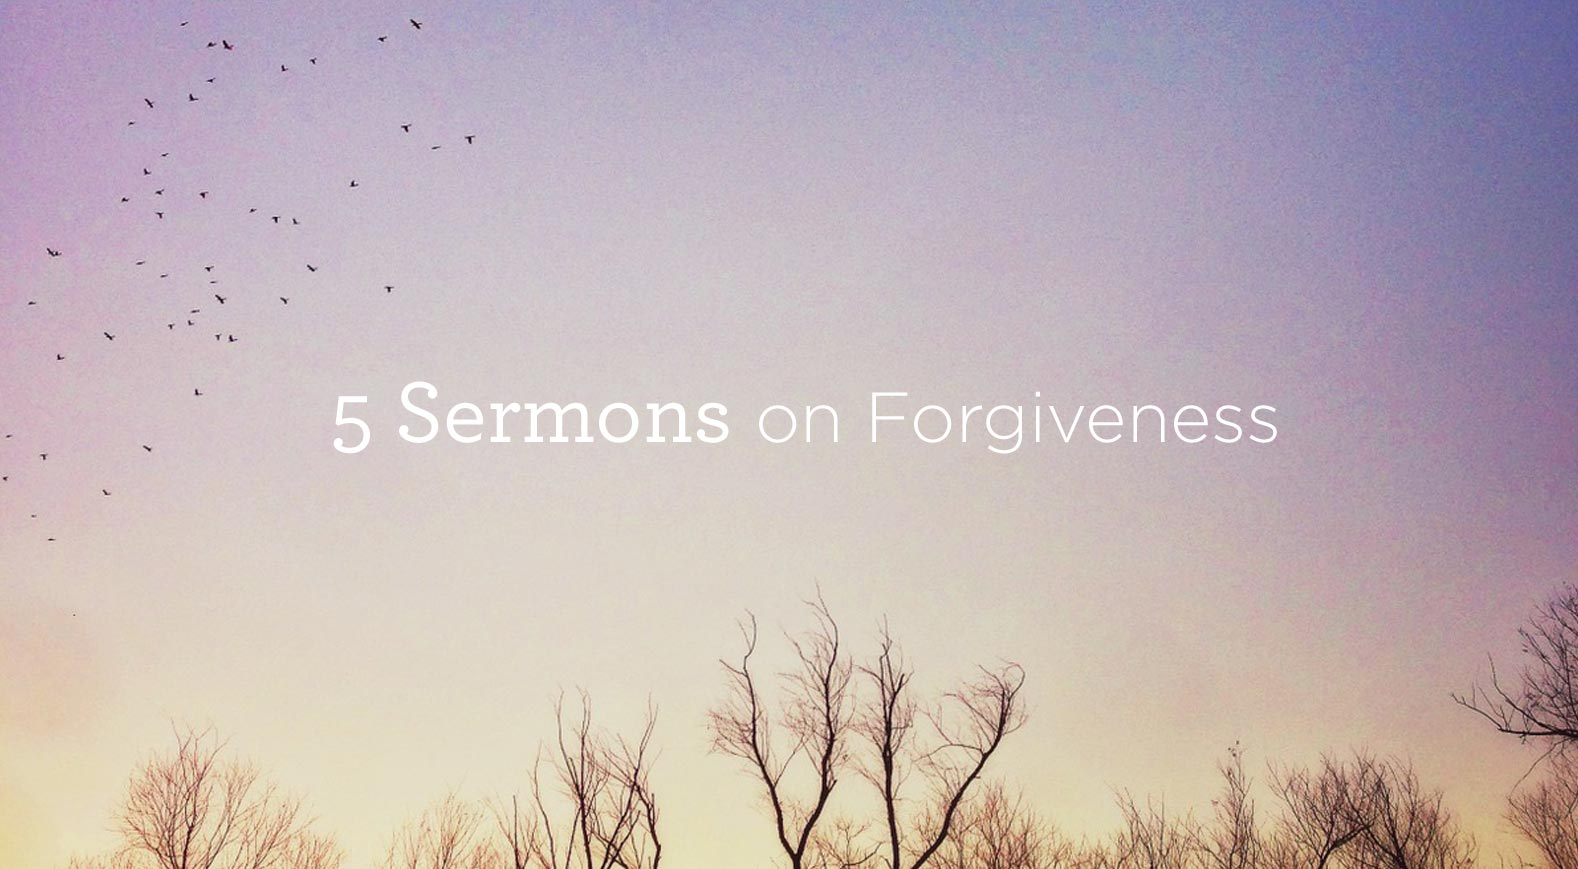 thumbnail image for Download 5 Sermons on 'Forgiveness' by Alistair Begg